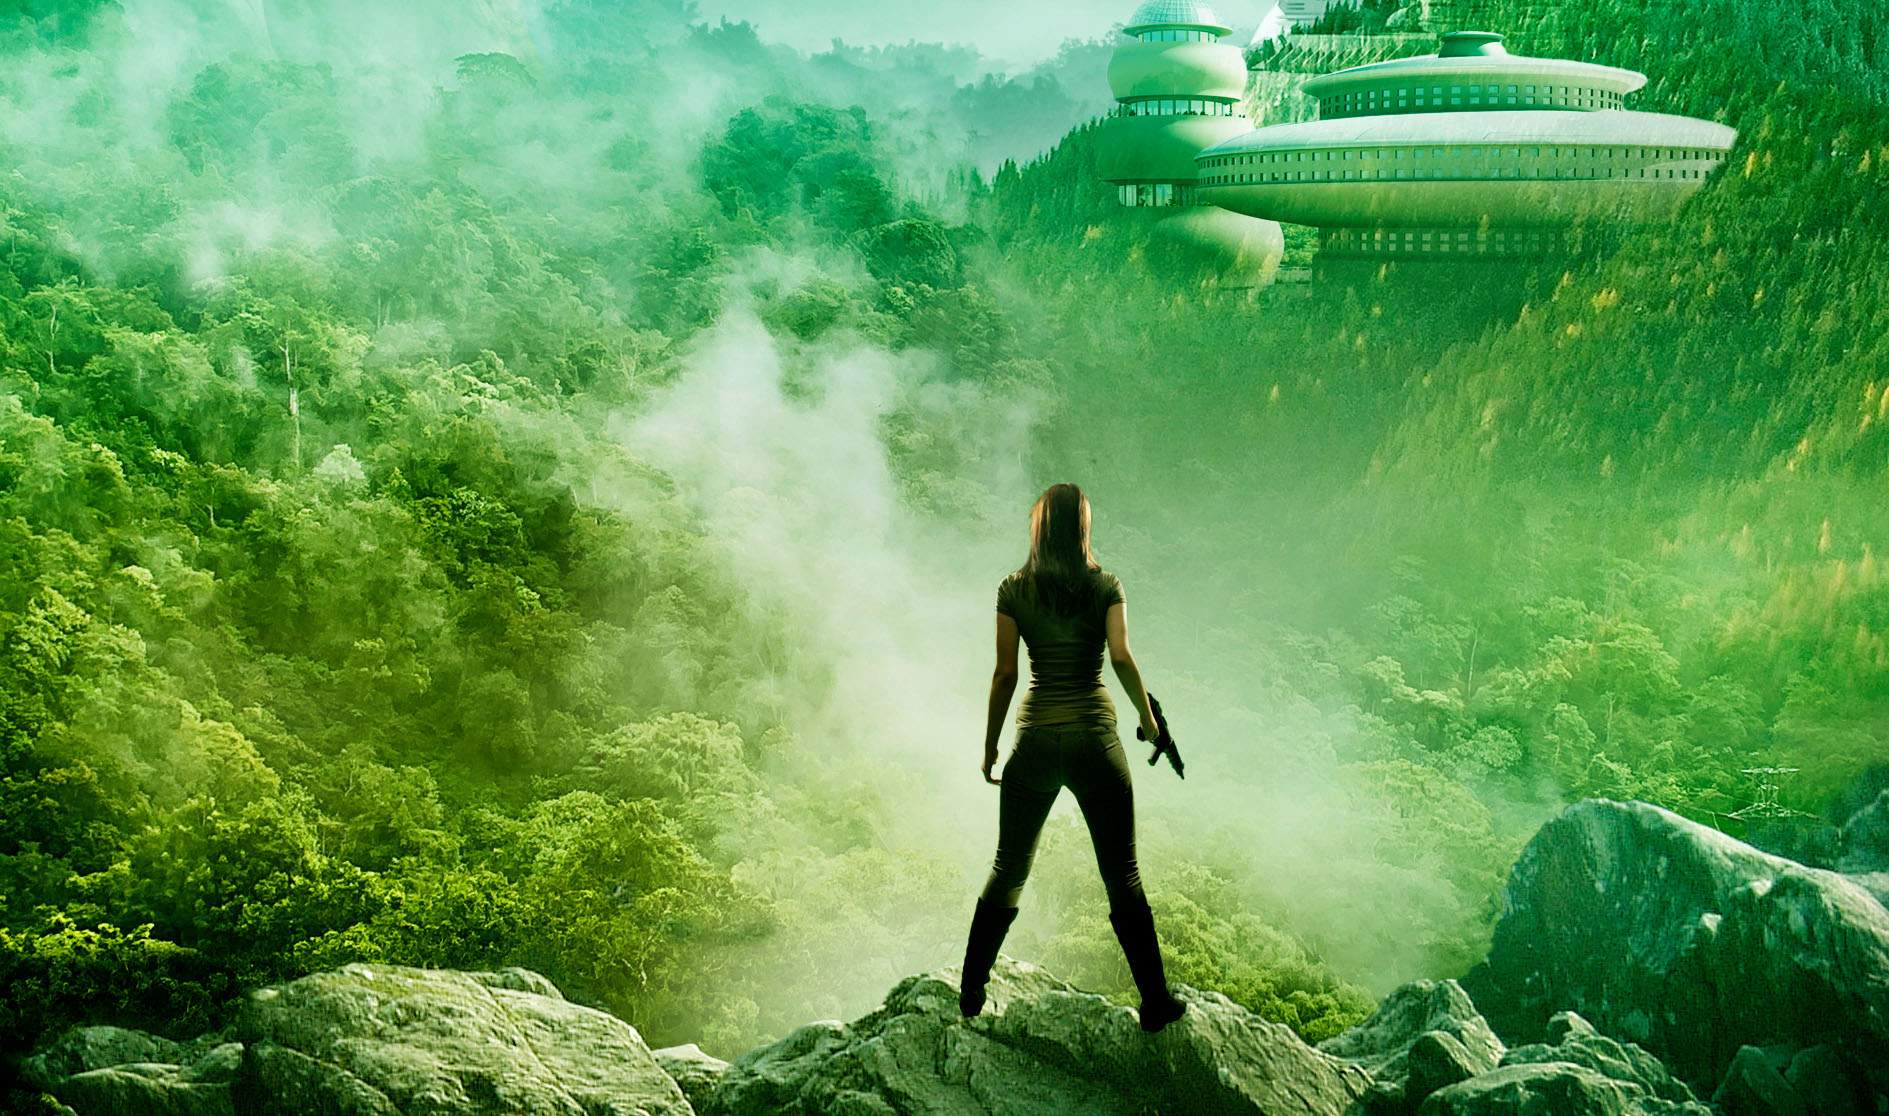 A silhouette of a woman in front of an alien jungle landscape.